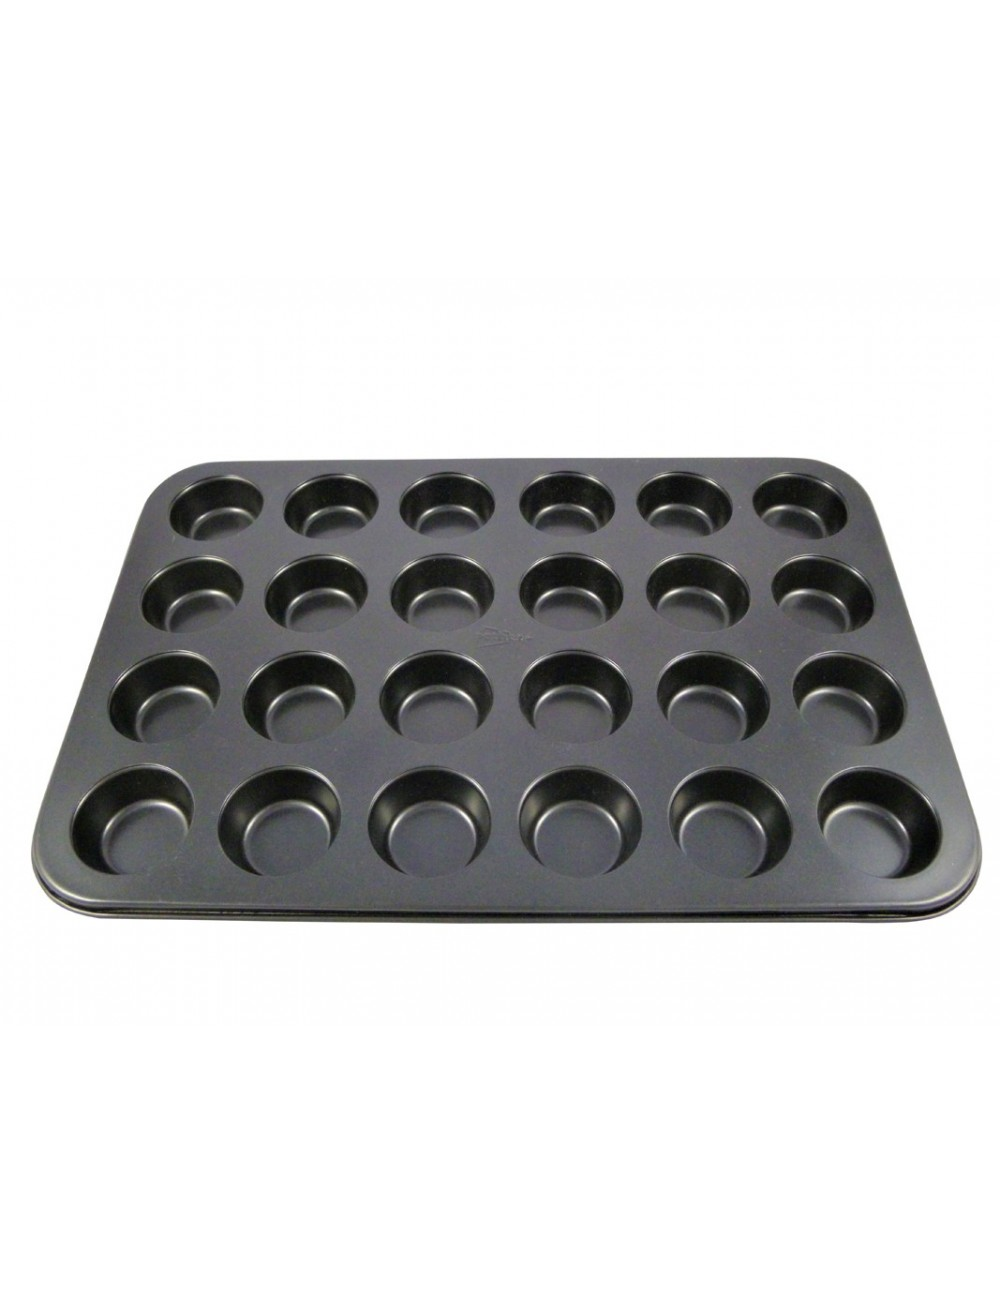 24-CAVITY MINI MUFFIN TIN - NON-STICK